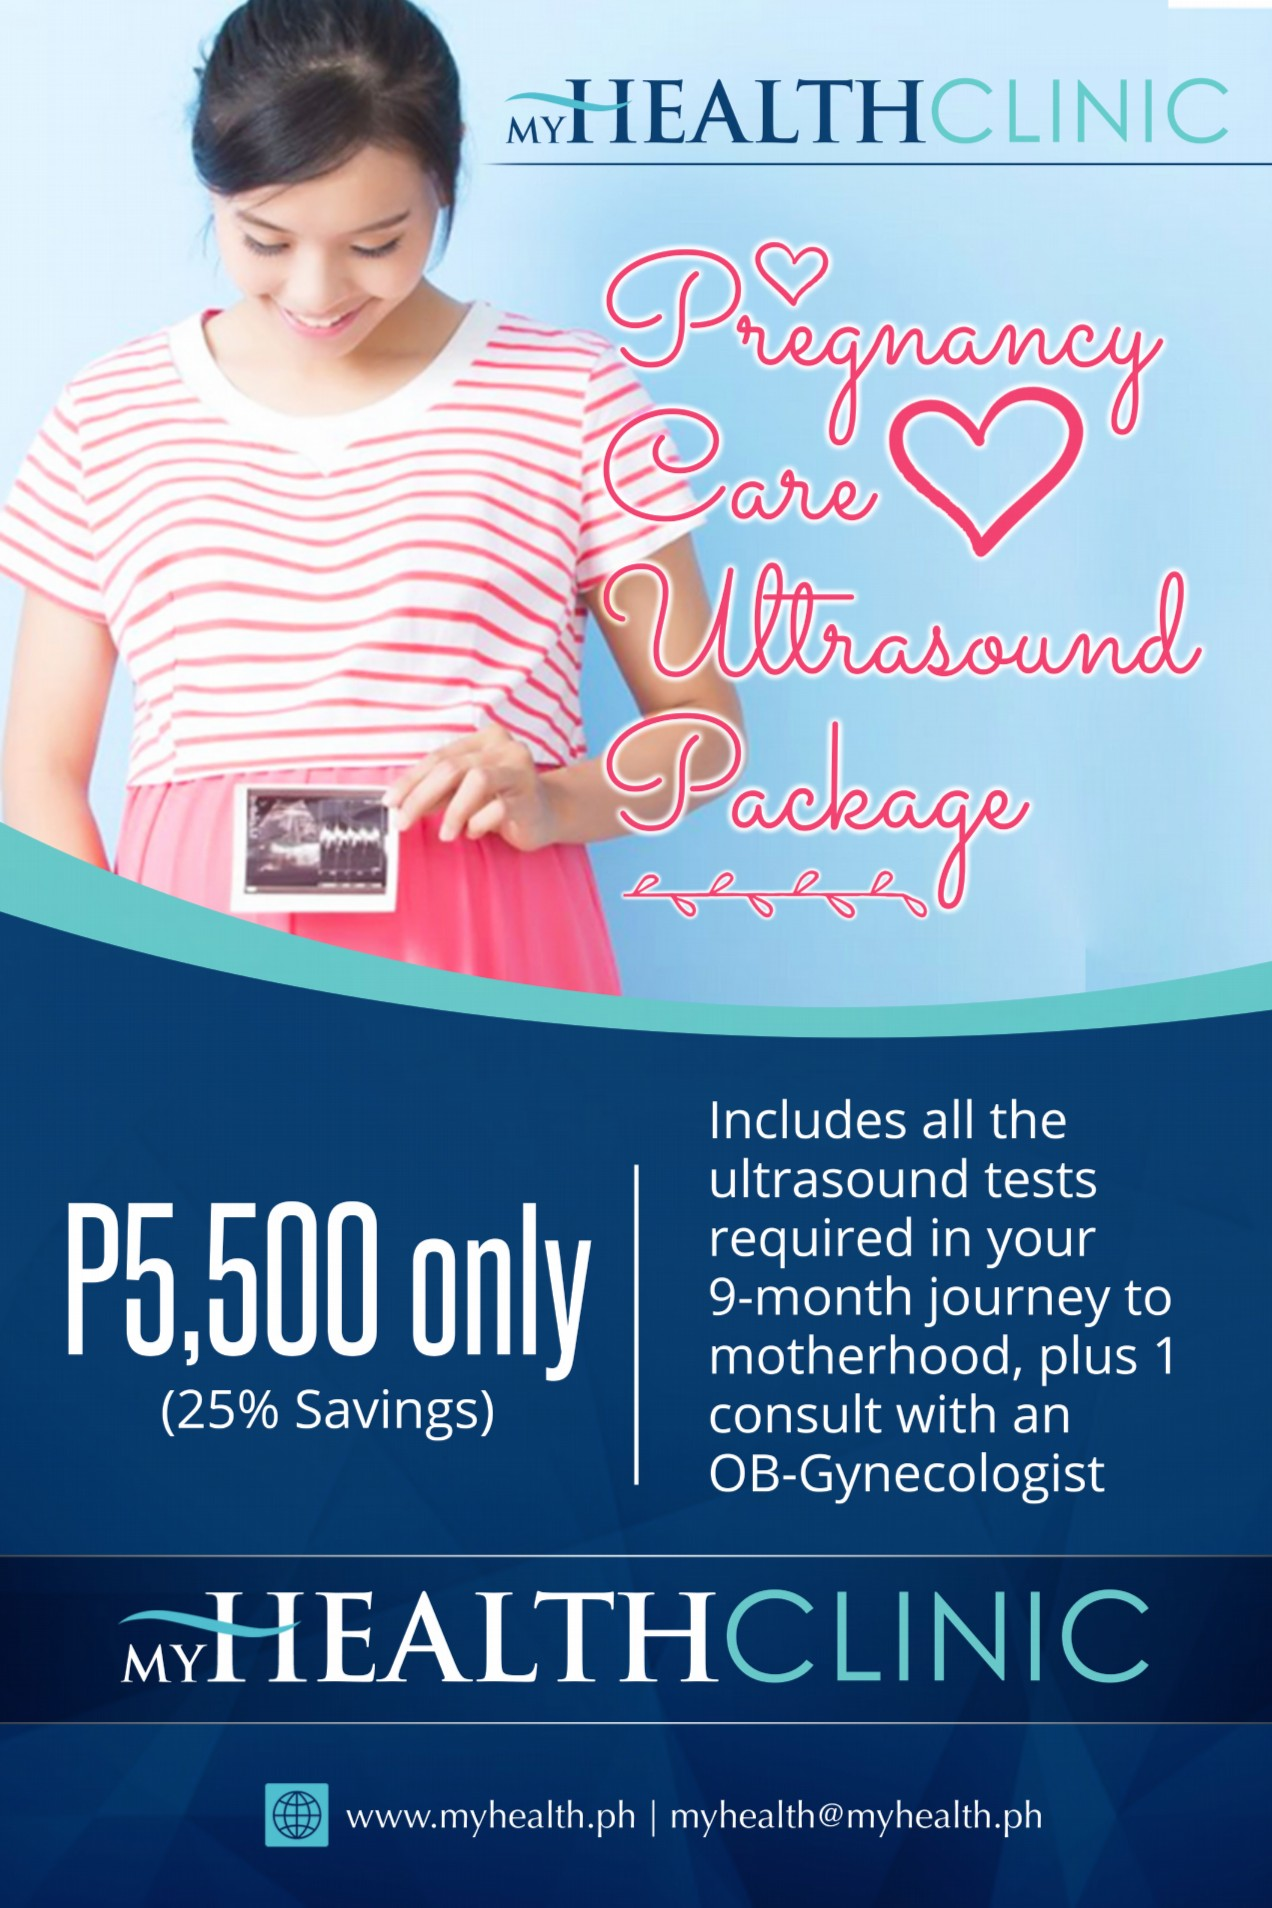 Pregnancy Care Ultrasound Package